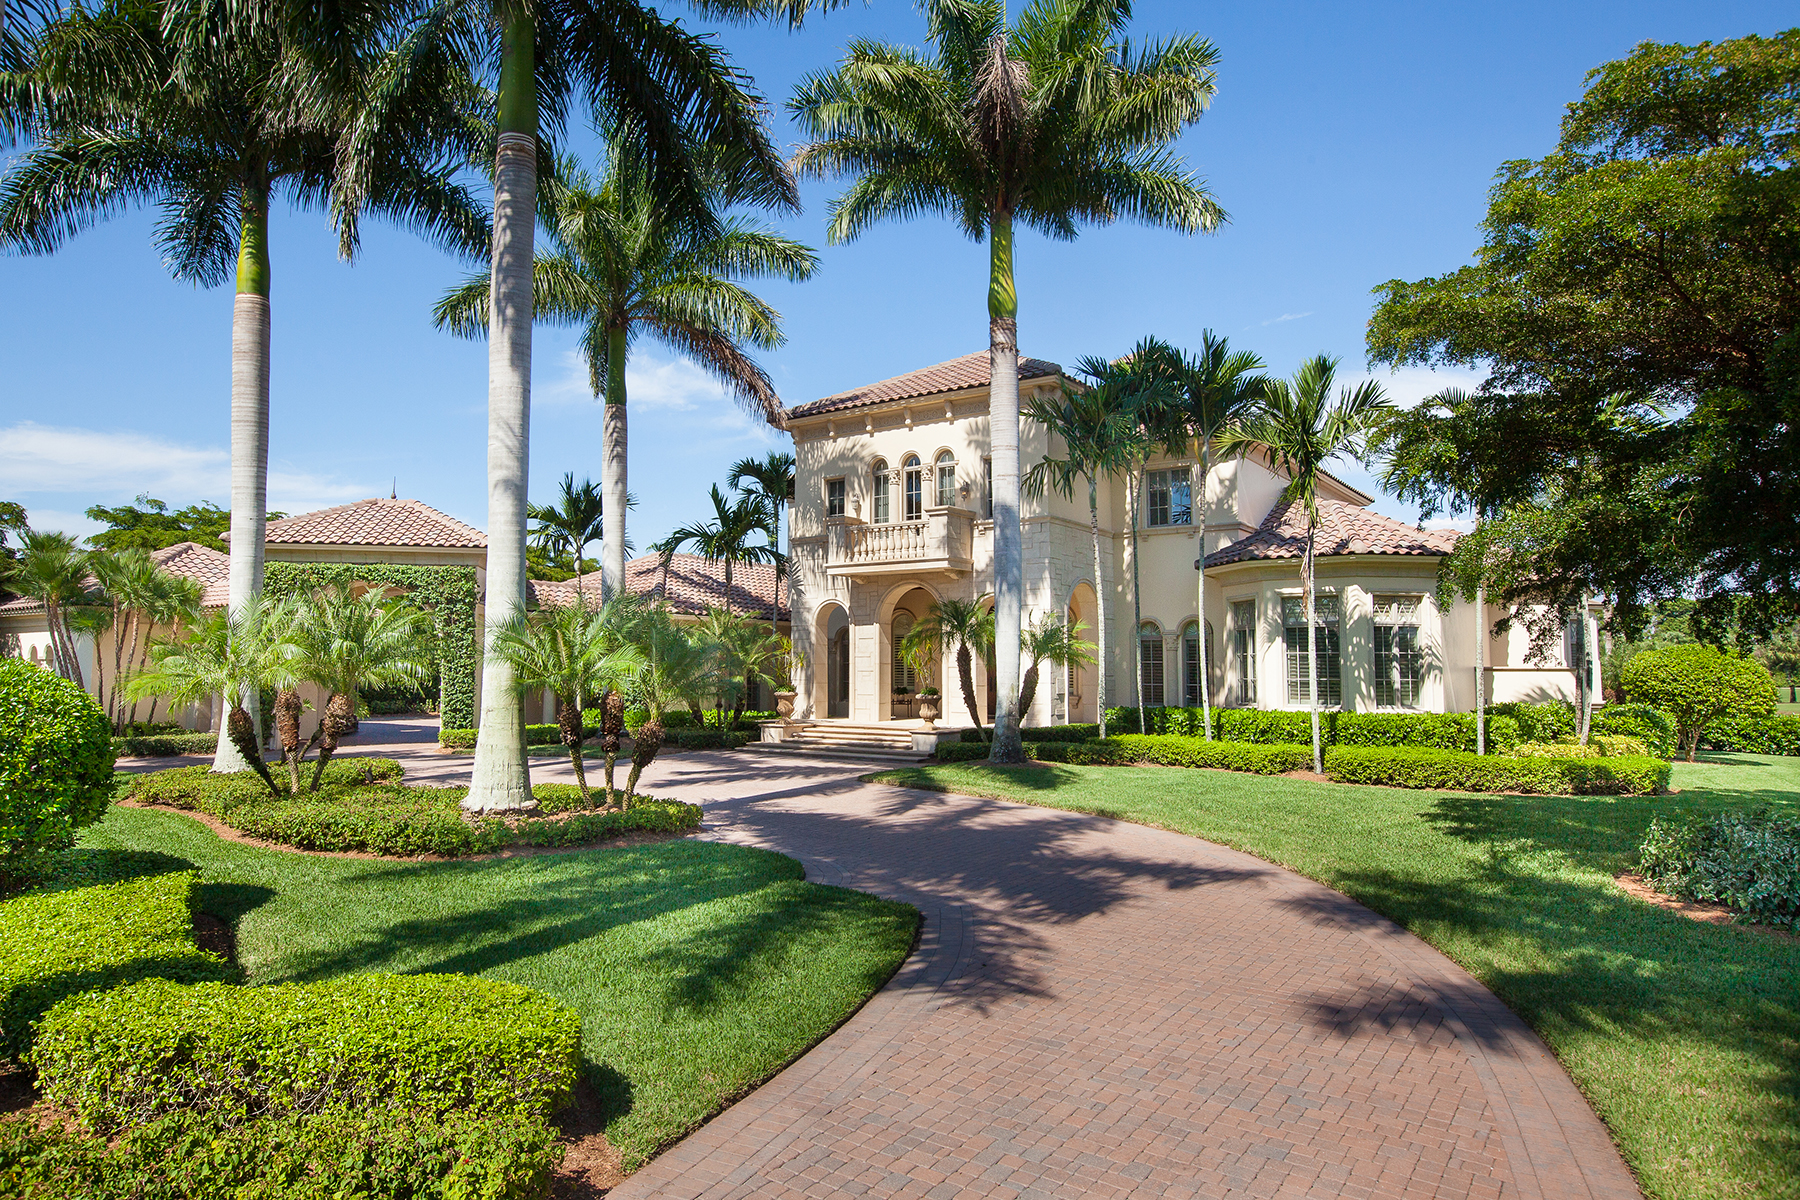 Casa Unifamiliar por un Venta en PELICAN MARSH - ESTATES AT BAY COLONY GOLF CLUB 9751 Bentgrass Naples, Florida, 34108 Estados Unidos